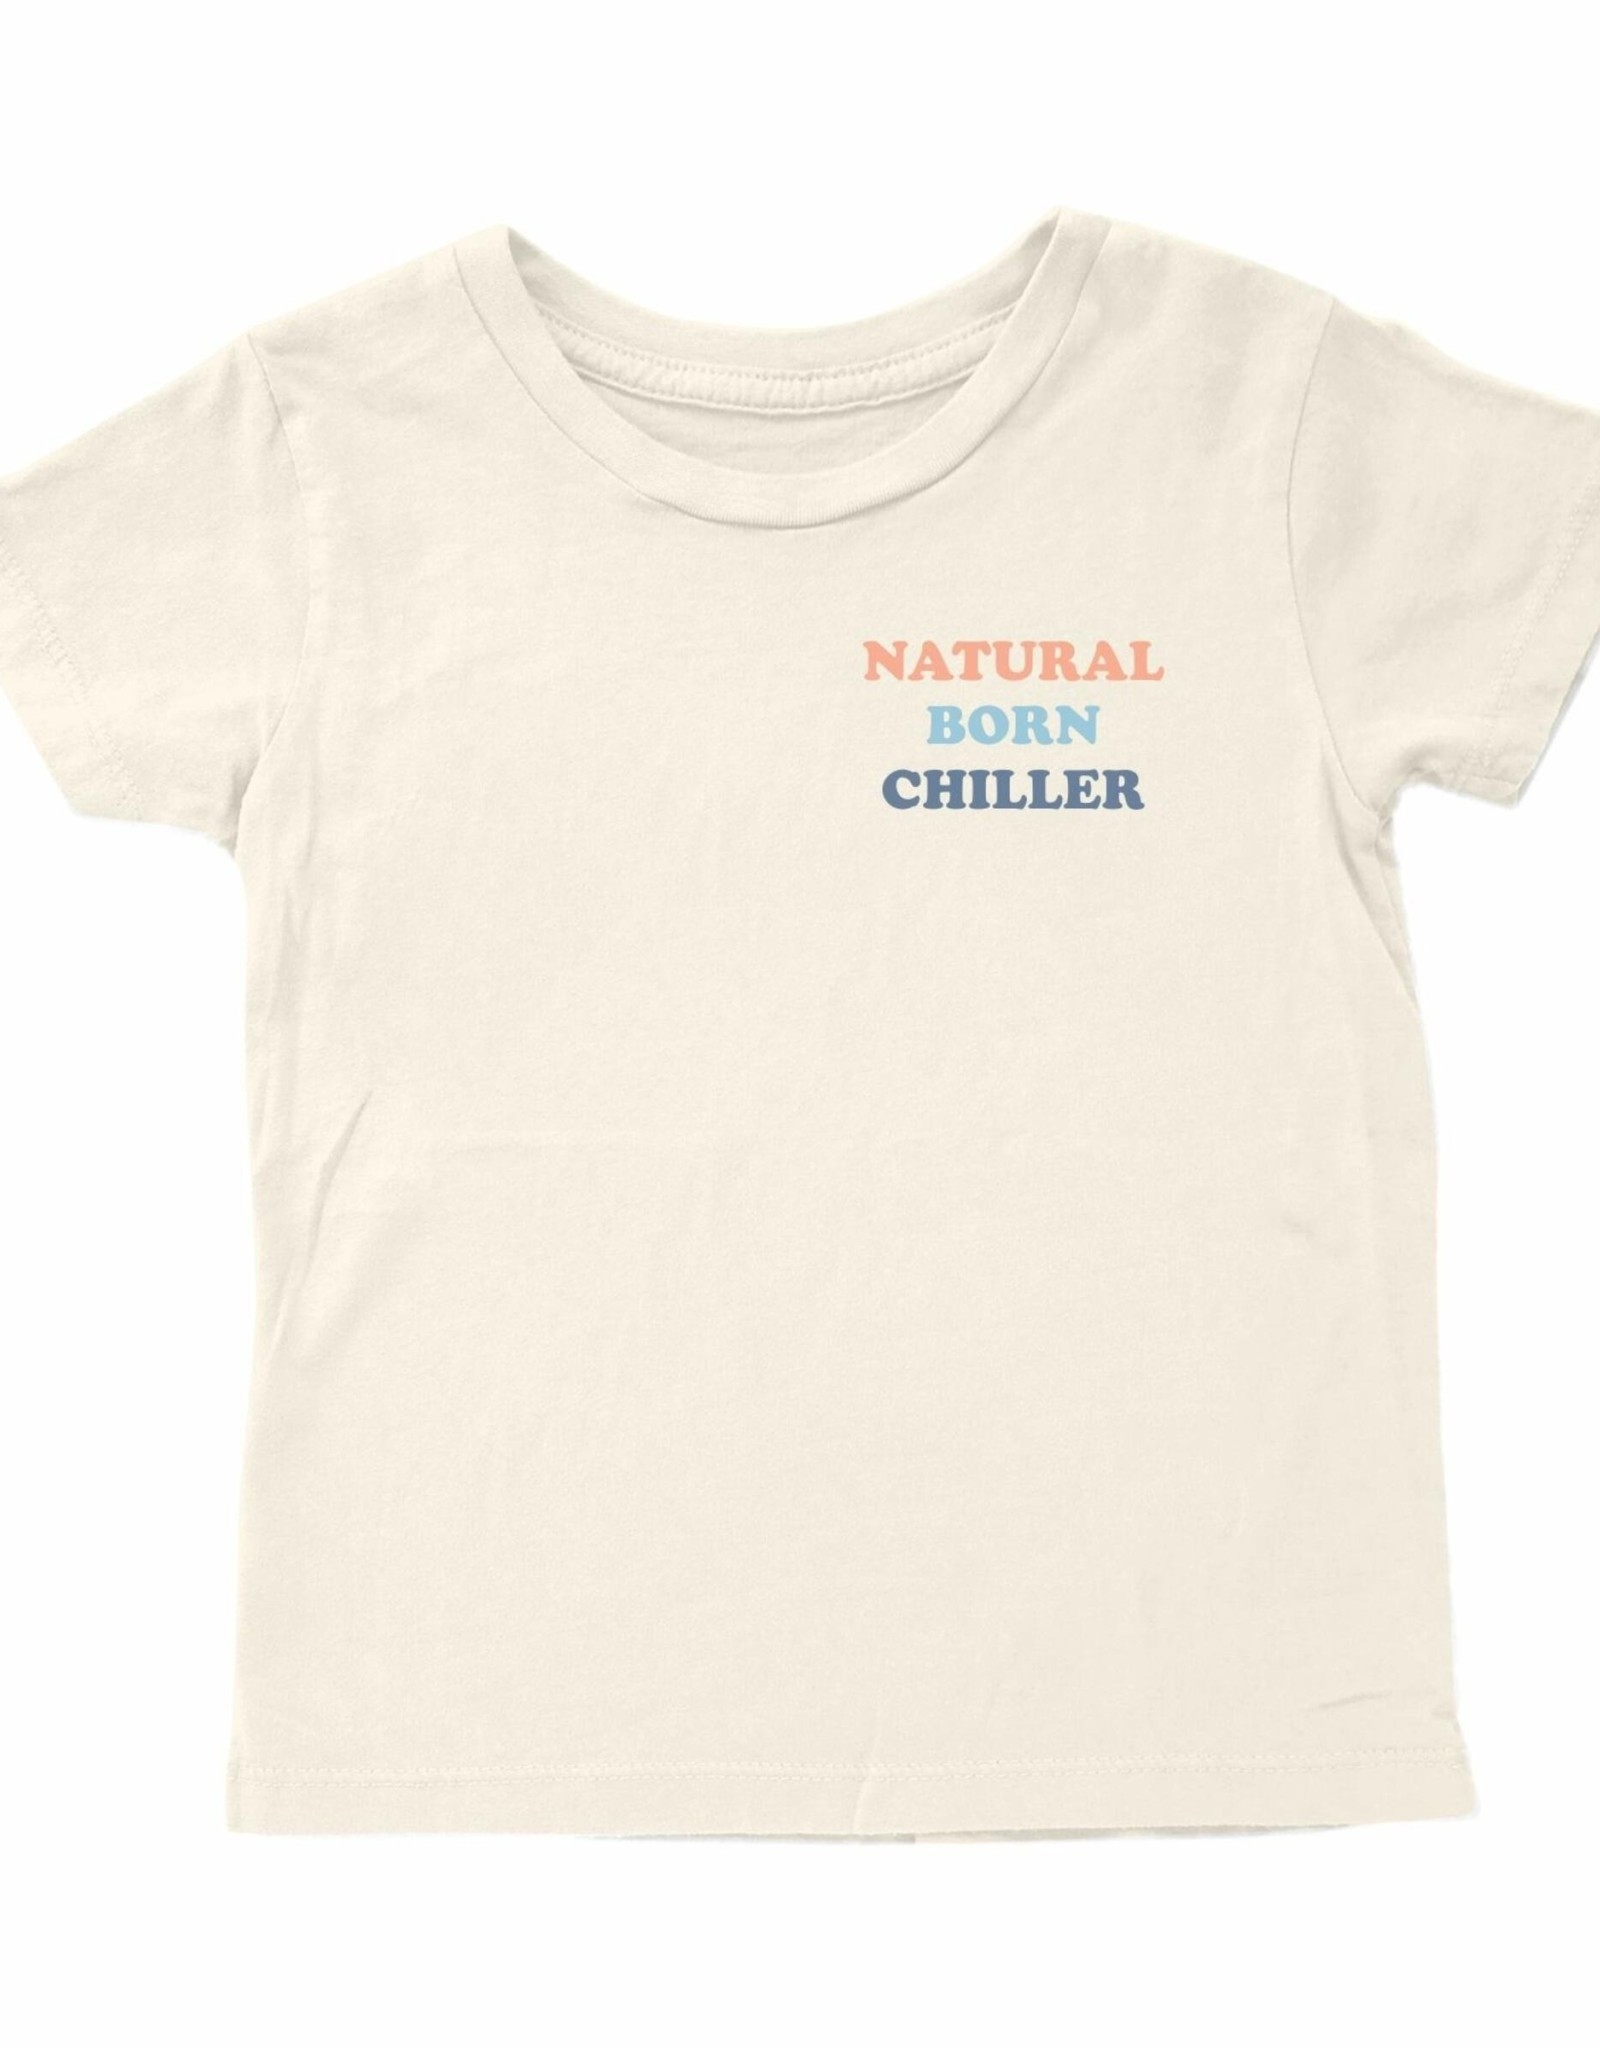 Tiny Whales chiller tee